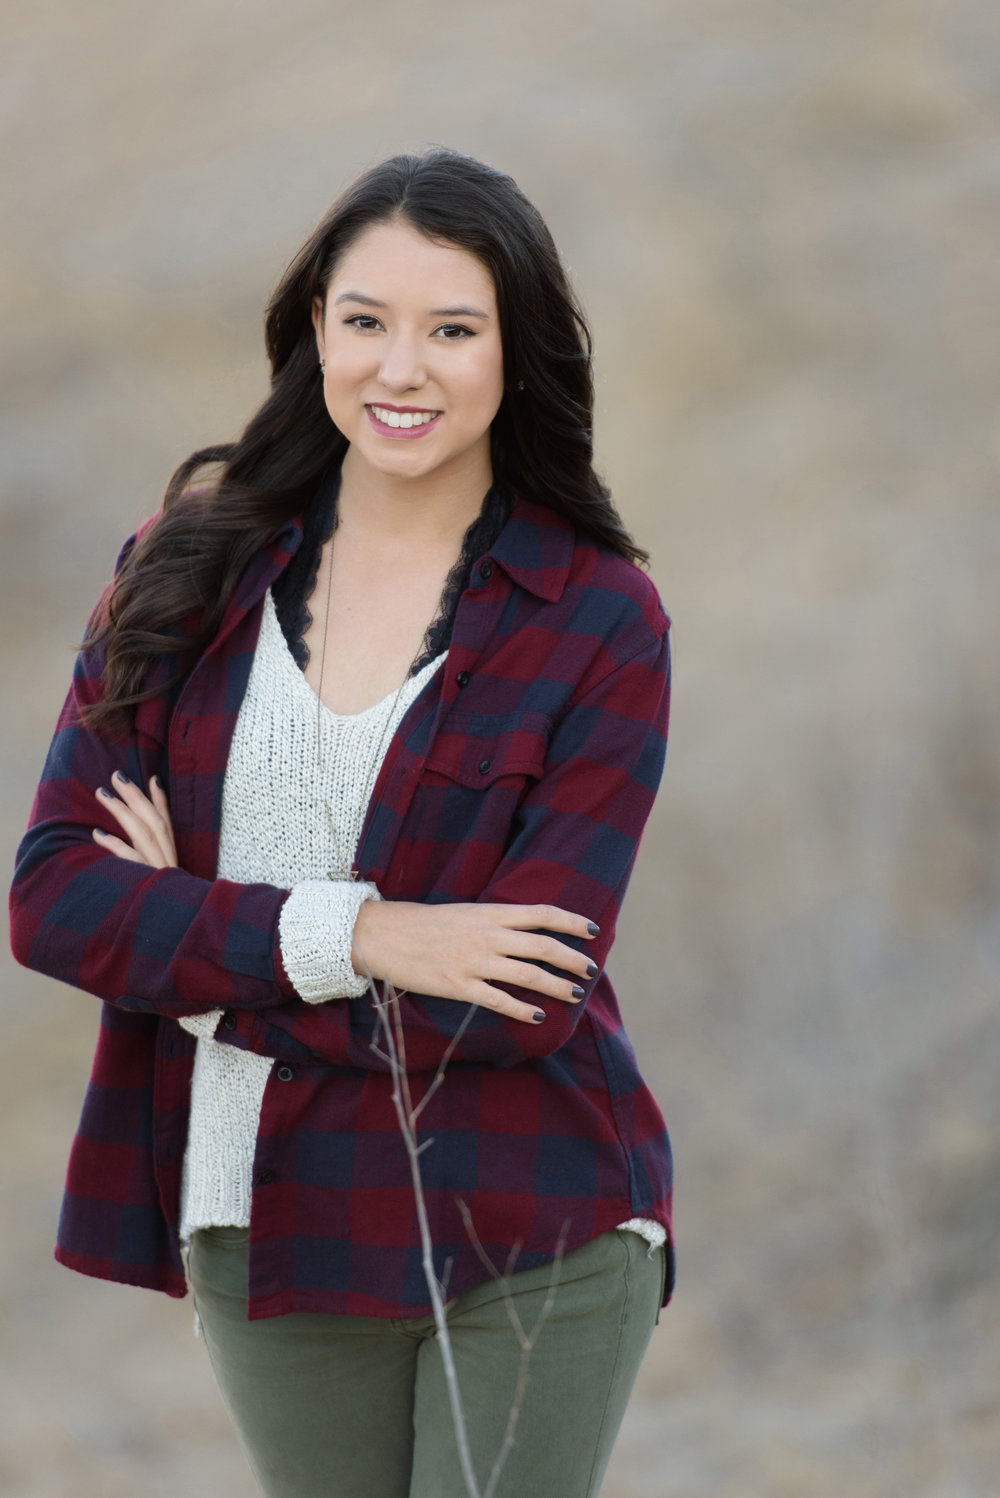 Dougherty Valley High School Senior Pictures taken by Nina Pomeroy Photography.